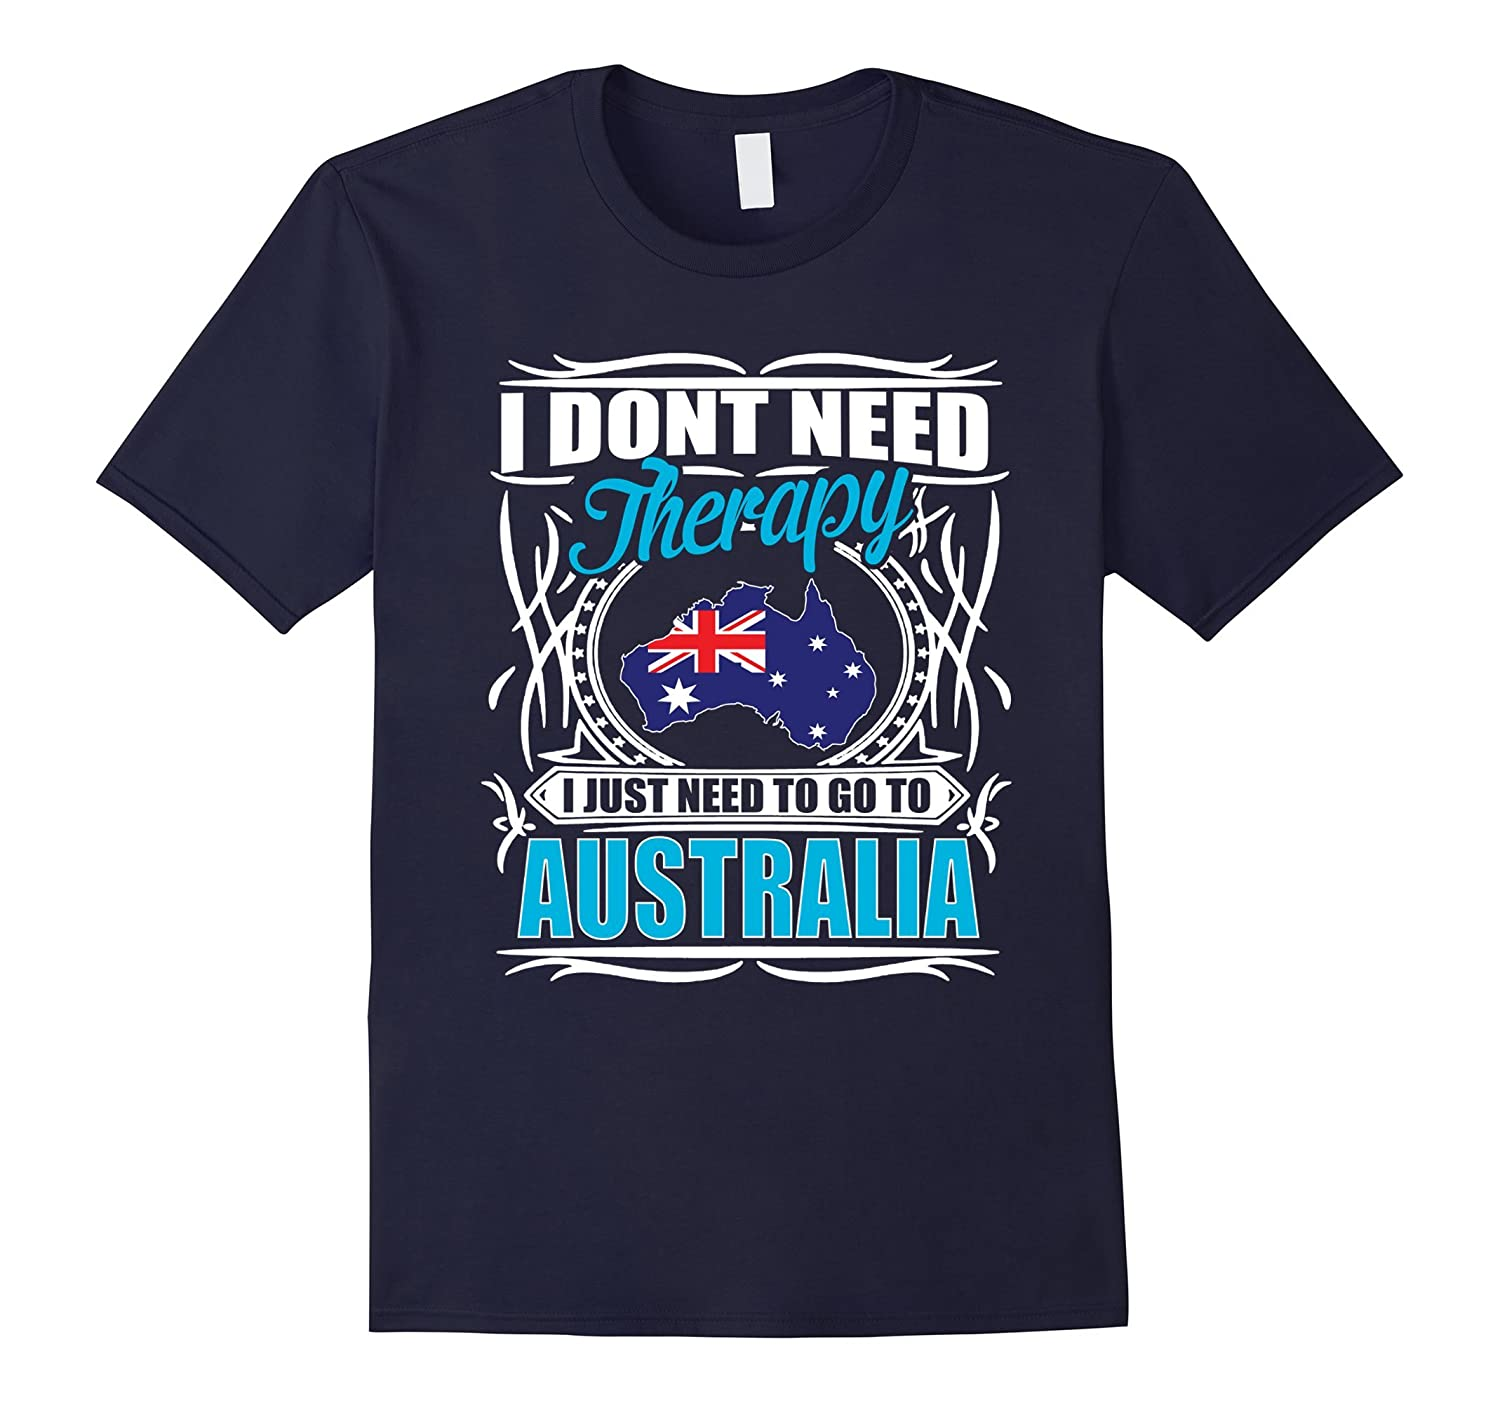 Australia T-shirts I Dont Need Therapy Just Need Australia-PL